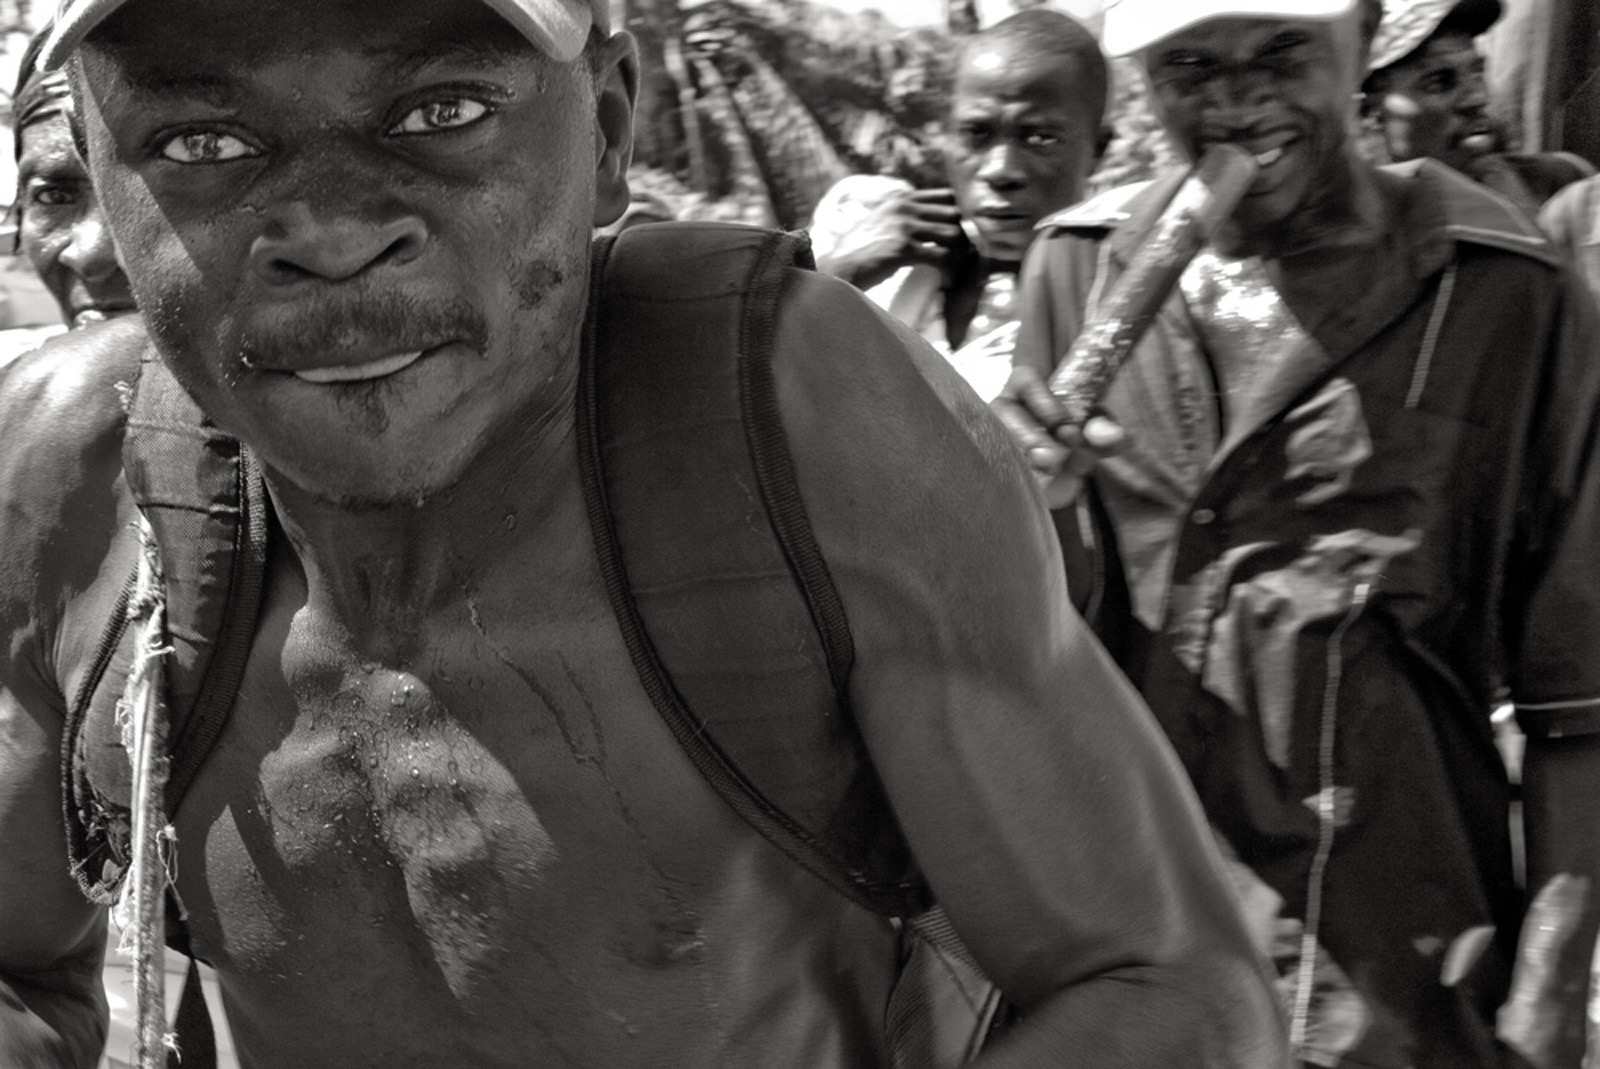 Ten Days in Haiti (2011)